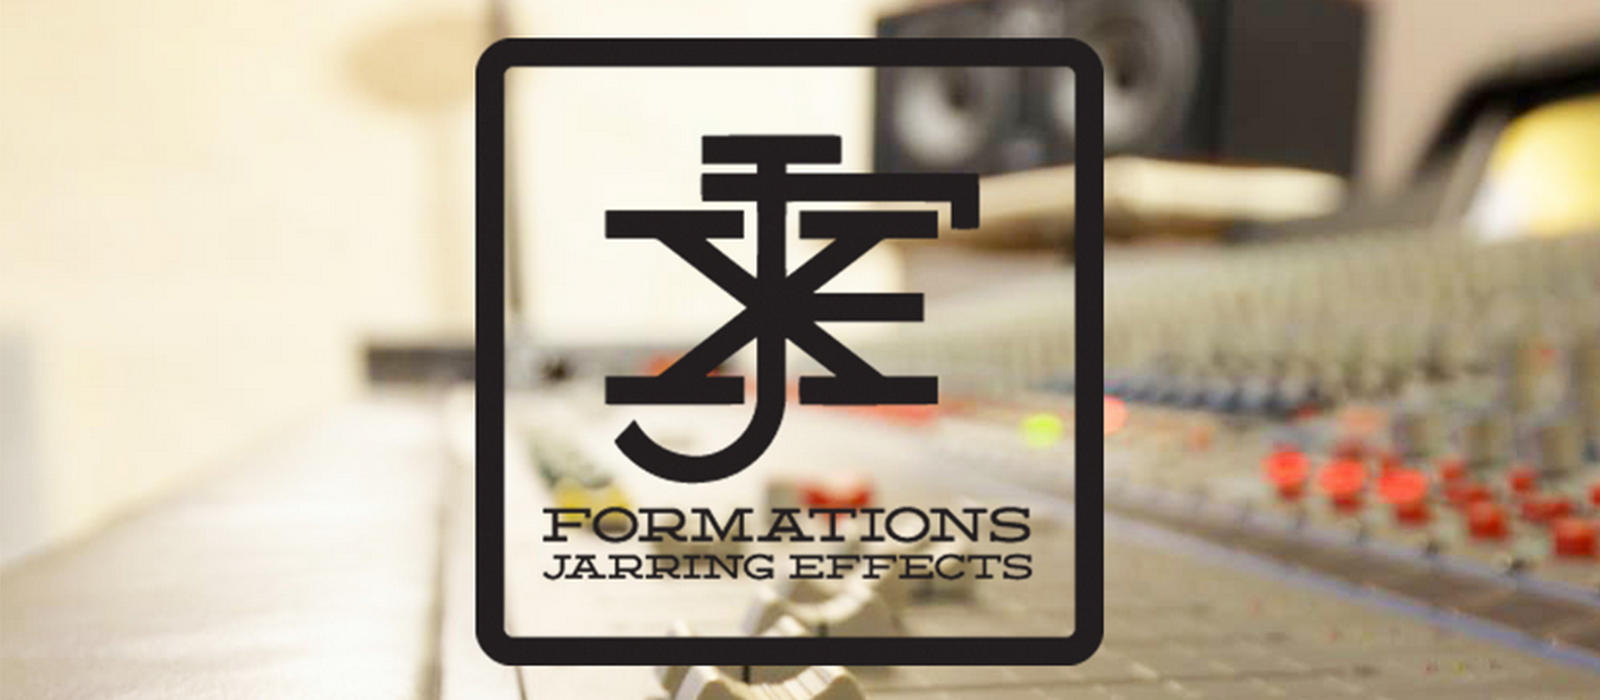 Formations Jarring Effects